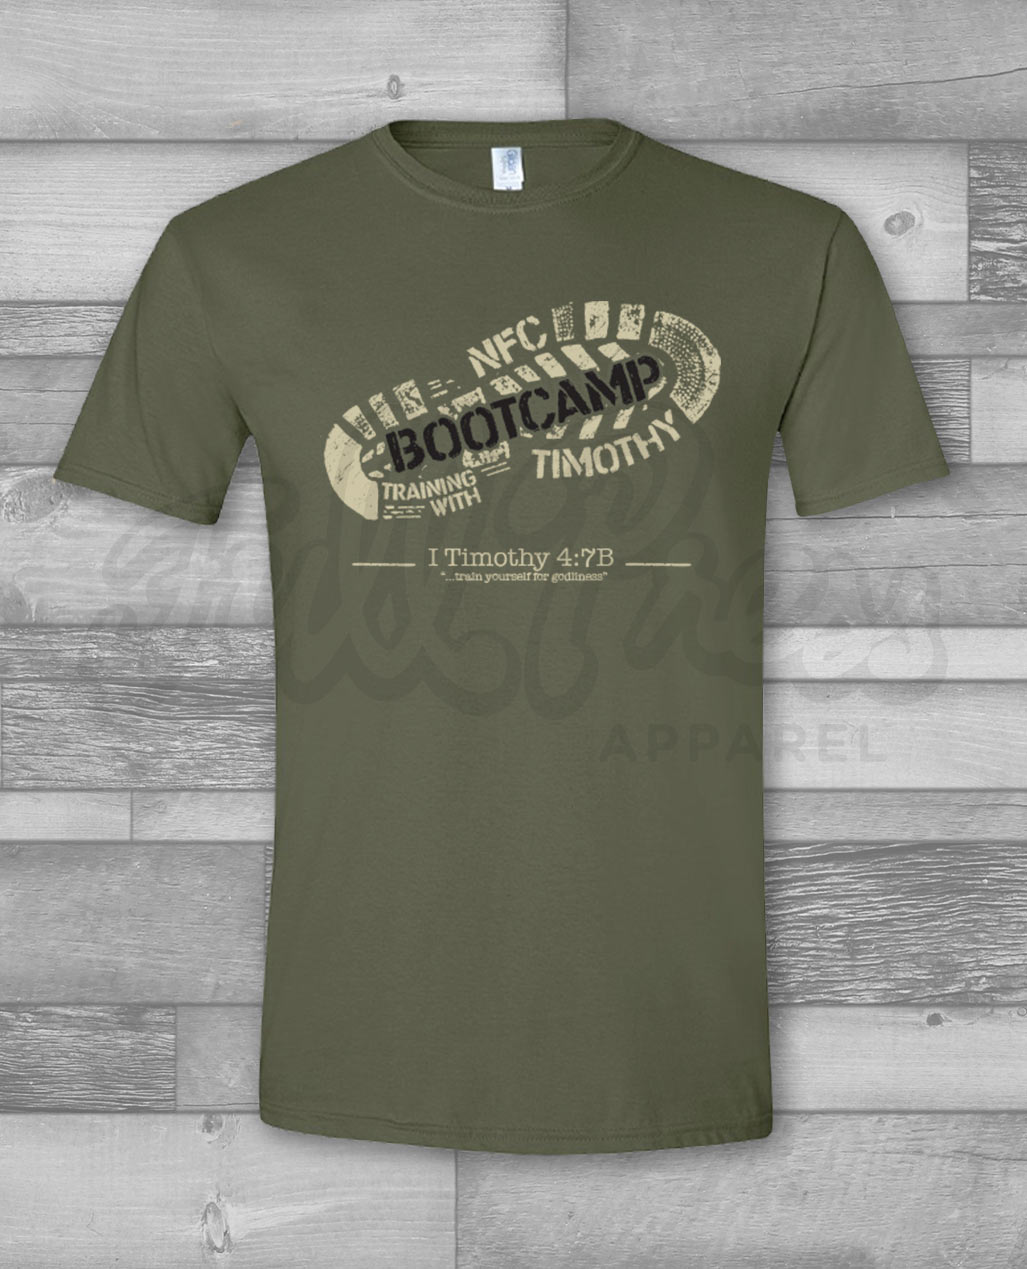 Church-Camp-Military-T-shirt  Application Form on blank mortgage loan, lender signature, document mortgage process, revised government monitoring pages,